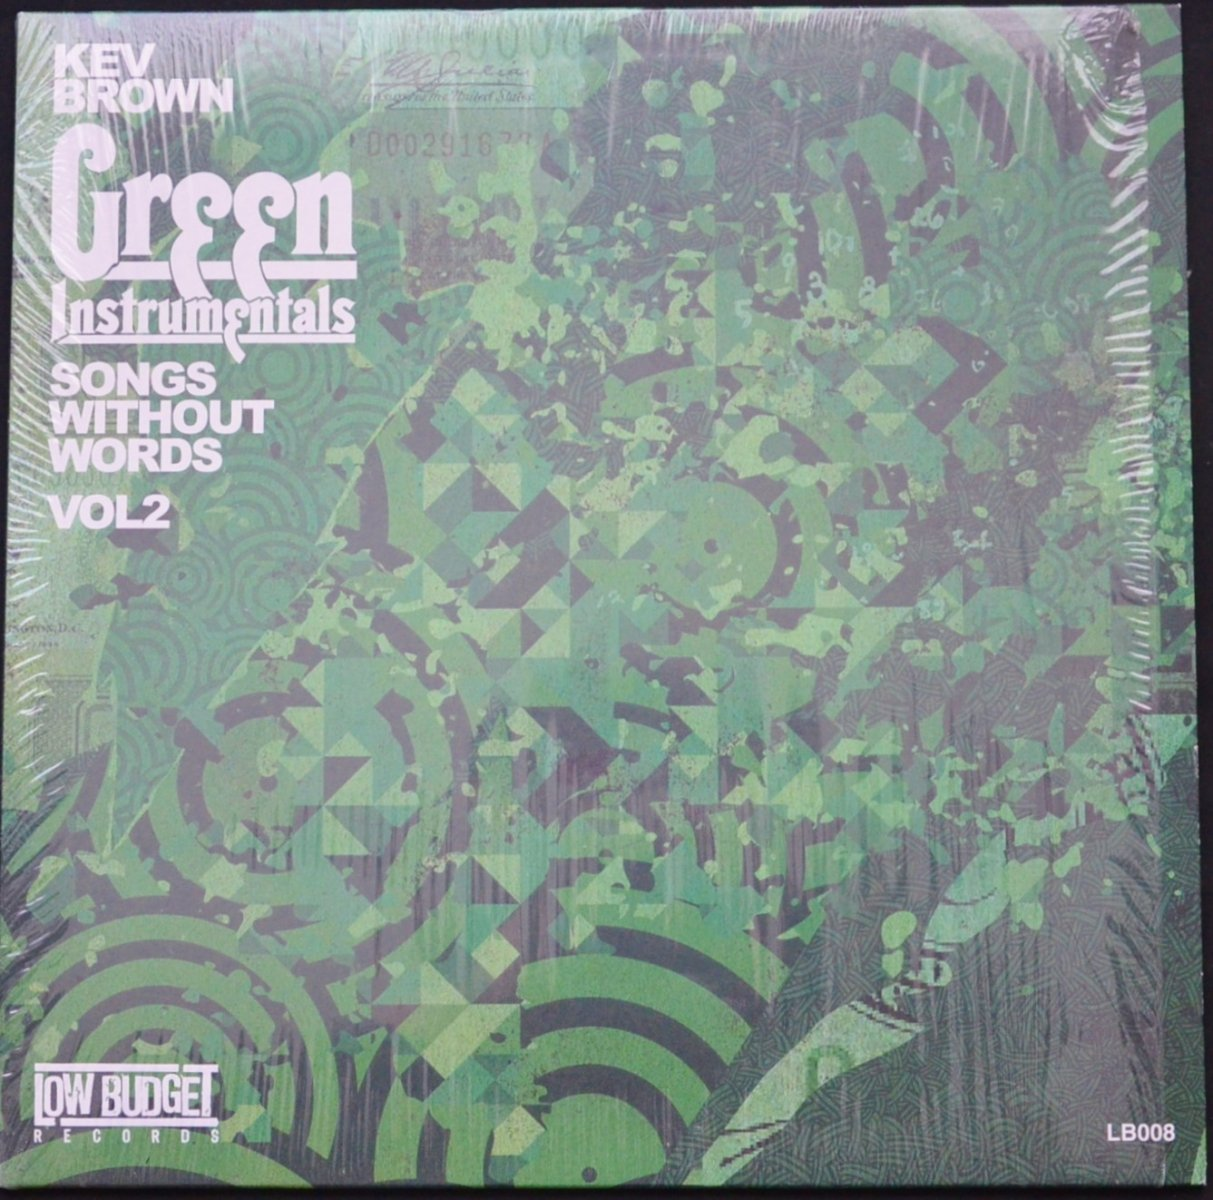 KEV BROWN / SONGS WITHOUT WORDS VOLUME 2 (GREEN INSTRUMENTALS) (1LP)